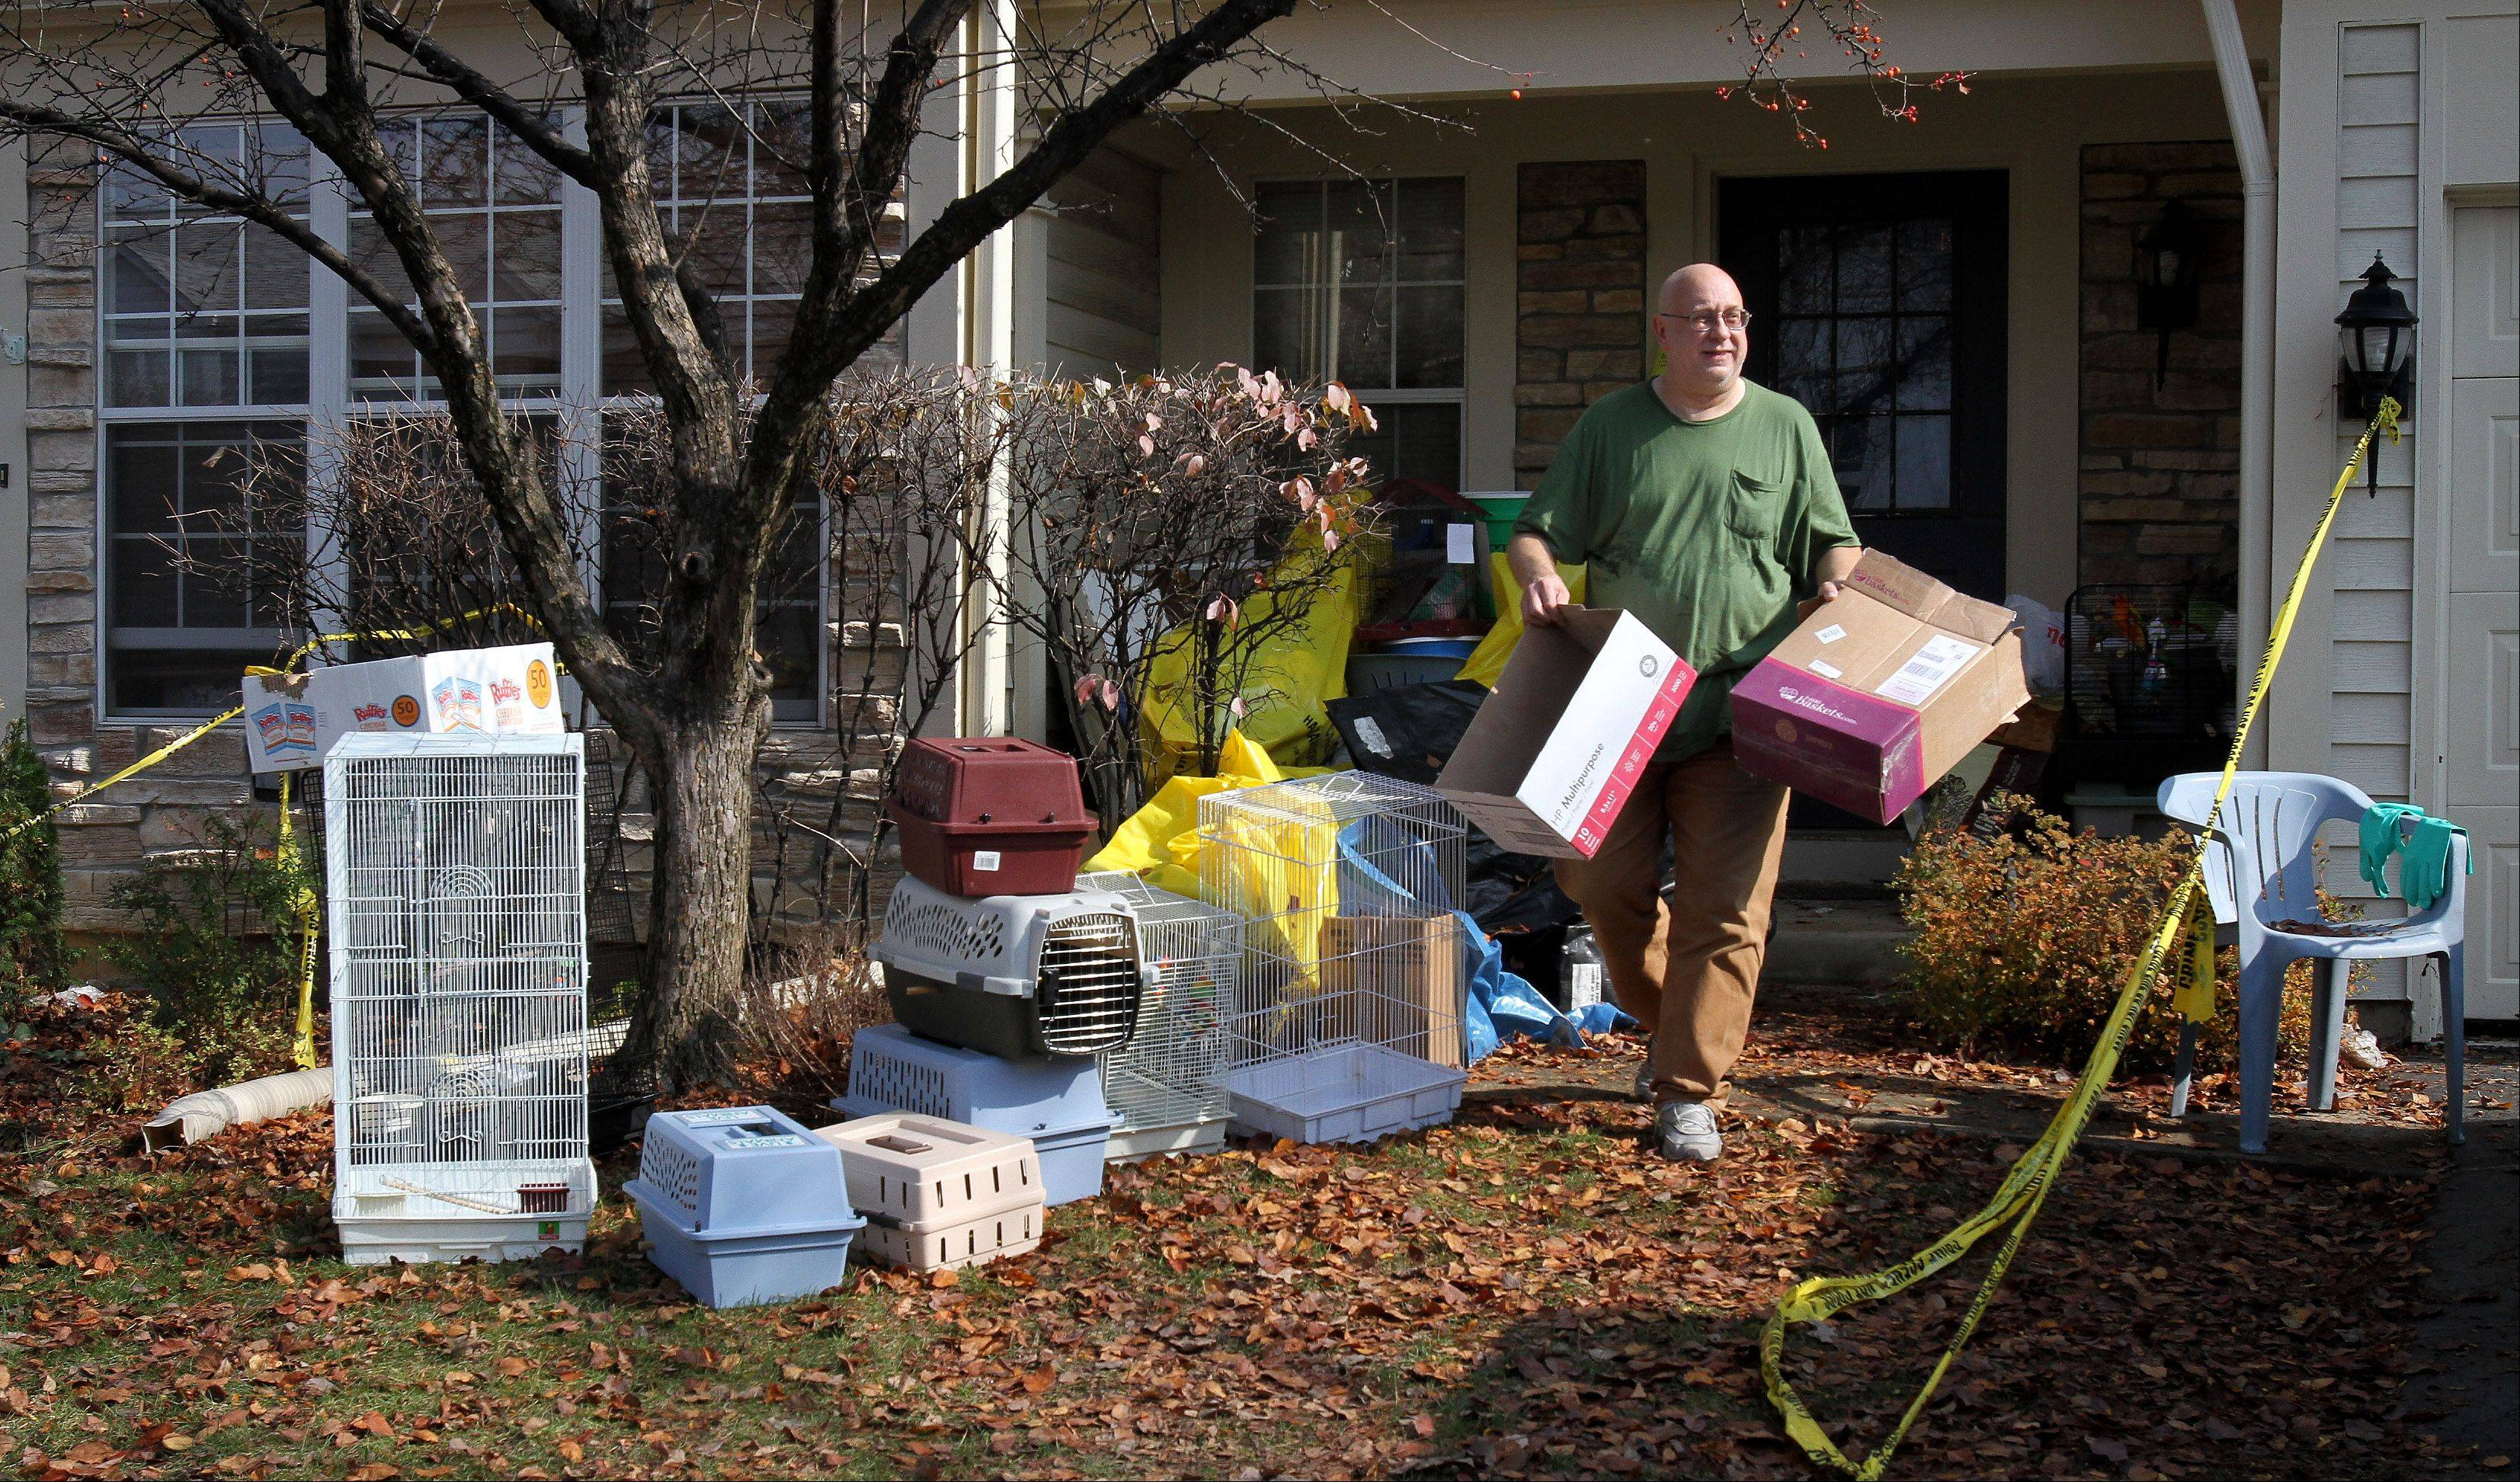 Dave Skeberdis, 57, of Aurora, removes items from his home, which housed 478 birds � 120 of them dead � as well as piles of garbage and bird feces three feet deep. People for the Ethical Treatment of Animals now is pushing the city of Aurora to press criminal charges against Skeberdis for cruelty to animals.